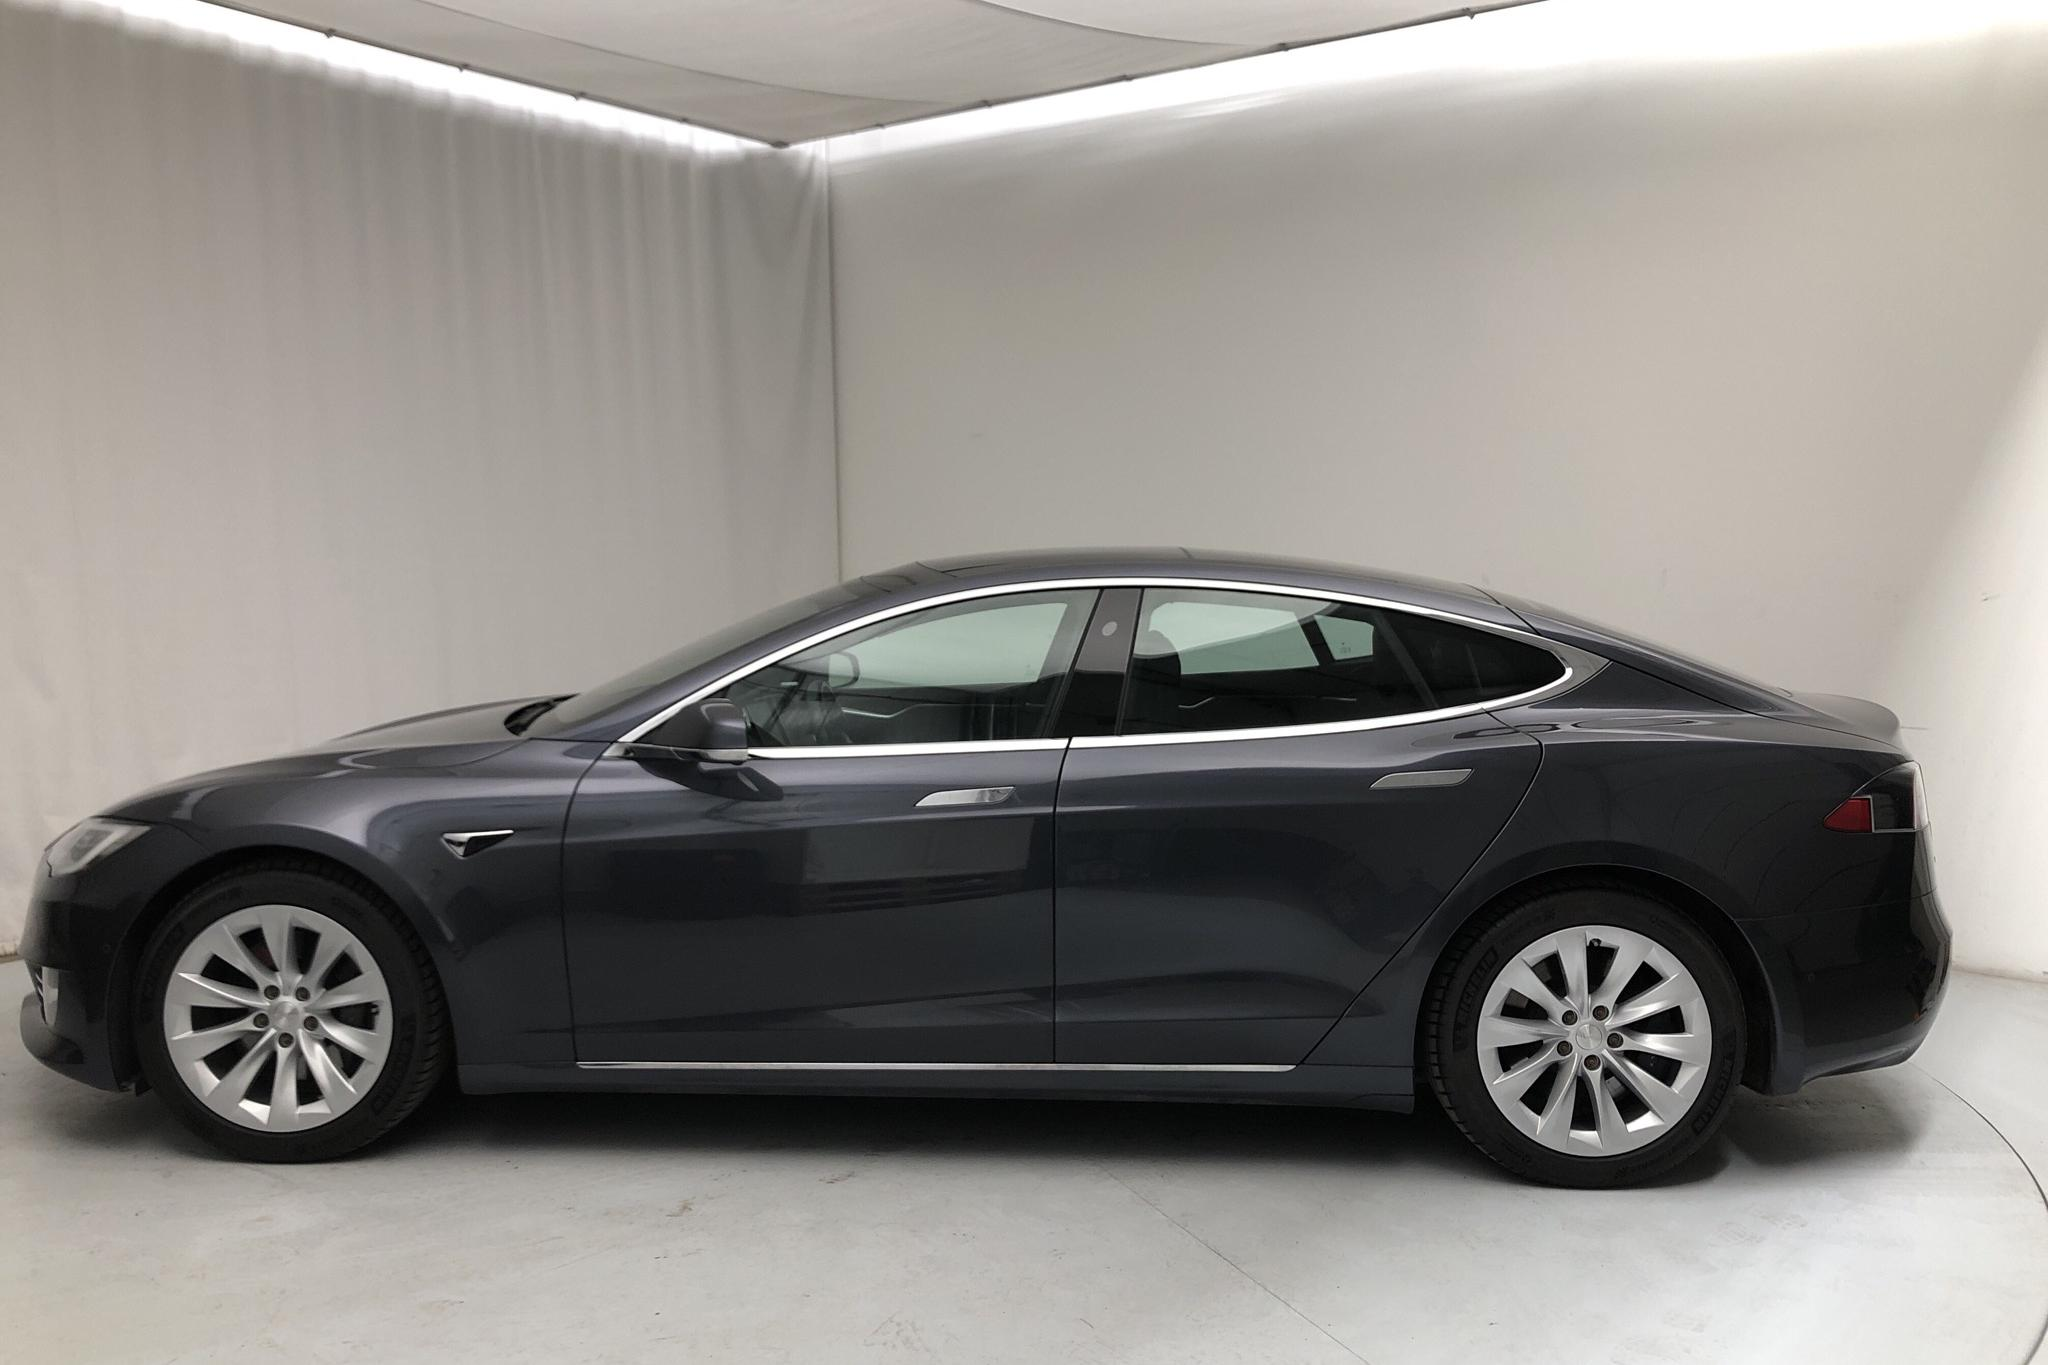 Tesla Model S 75D (525hk) - 110 650 km - Automatic - gray - 2017